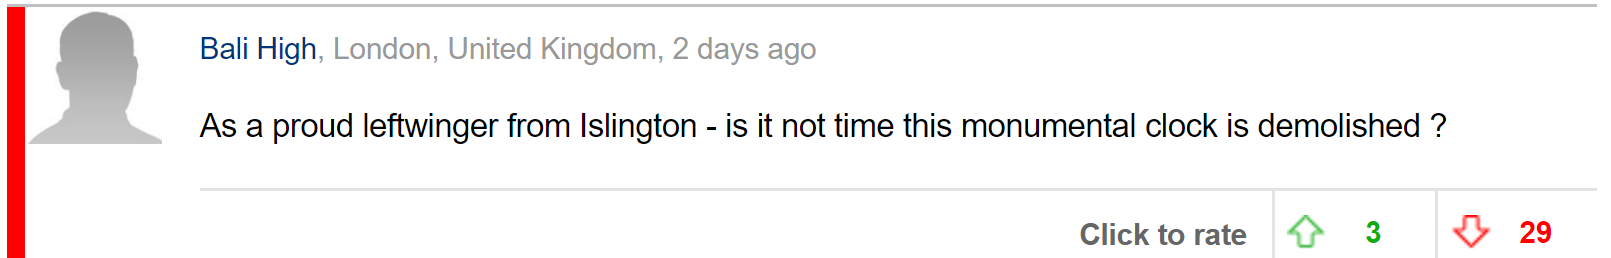 bali high comment.PNG